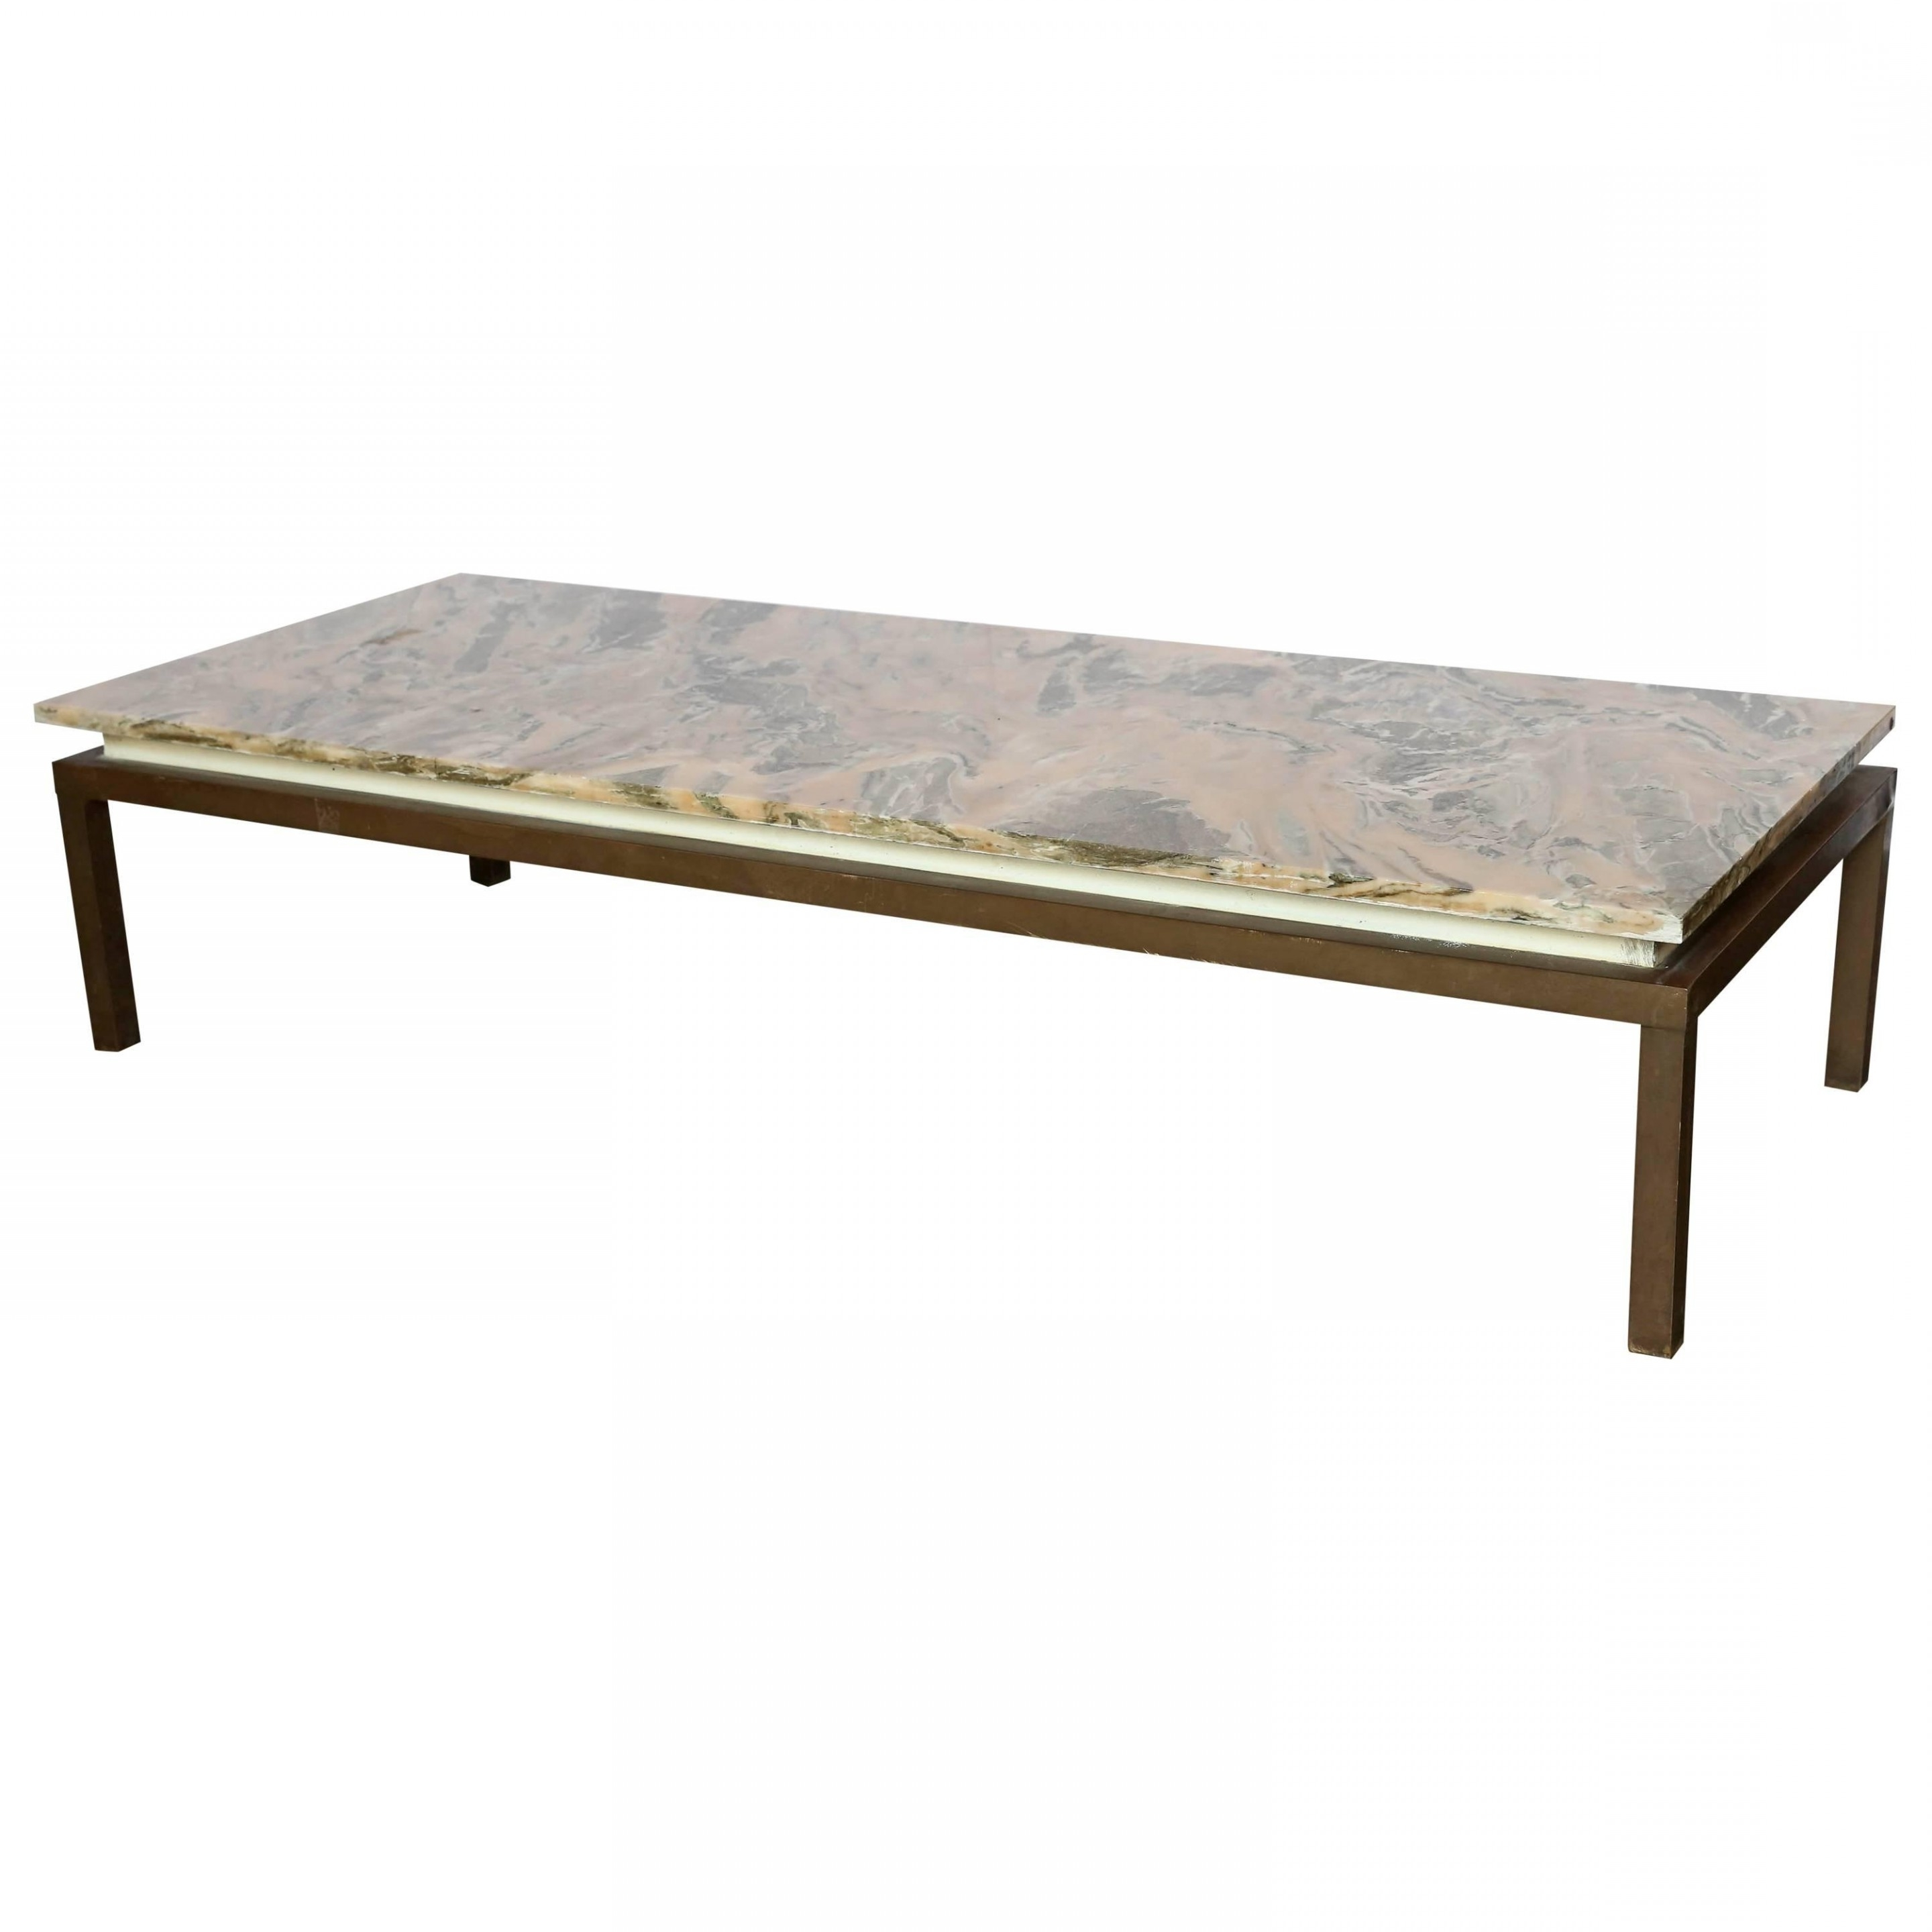 Vintage Industrial Coffee Table Lovely Mid Century Modern Marble Throughout Best And Newest Mid Century Modern Marble Coffee Tables (Gallery 19 of 20)